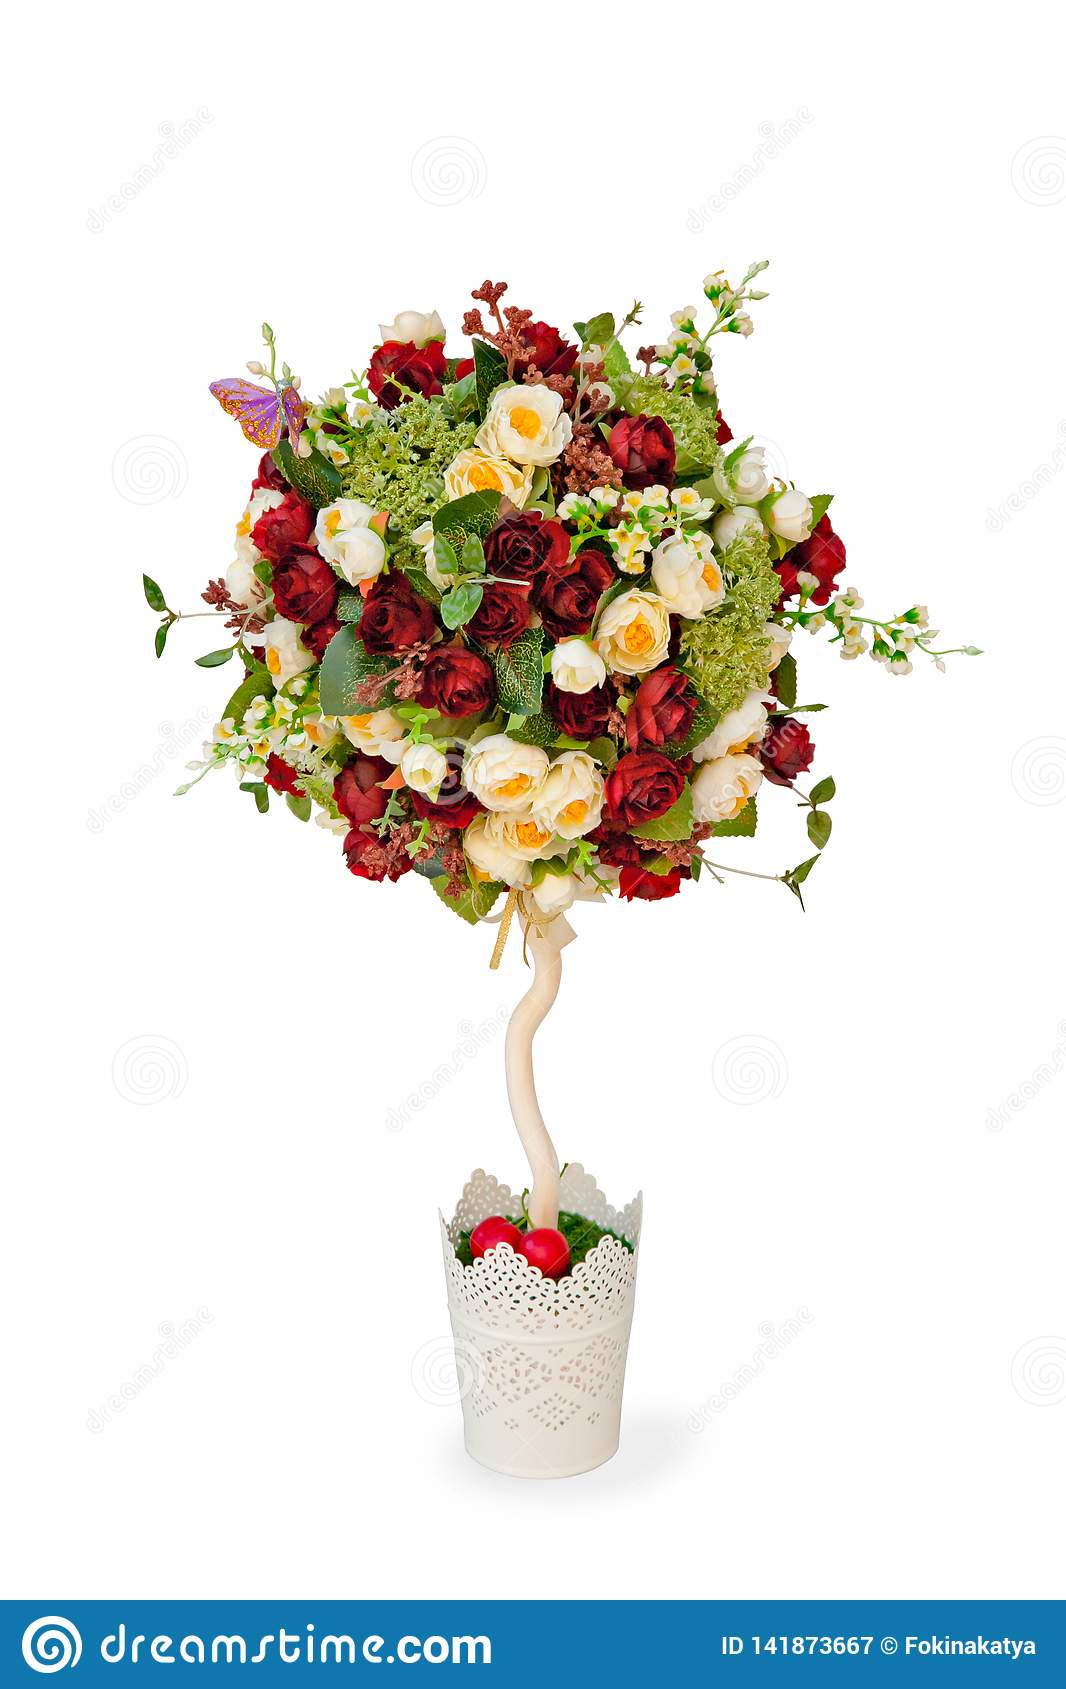 Topiary Tree Made Of Artificial Flowers Stock Image Image Of Tree Topiary 141873667